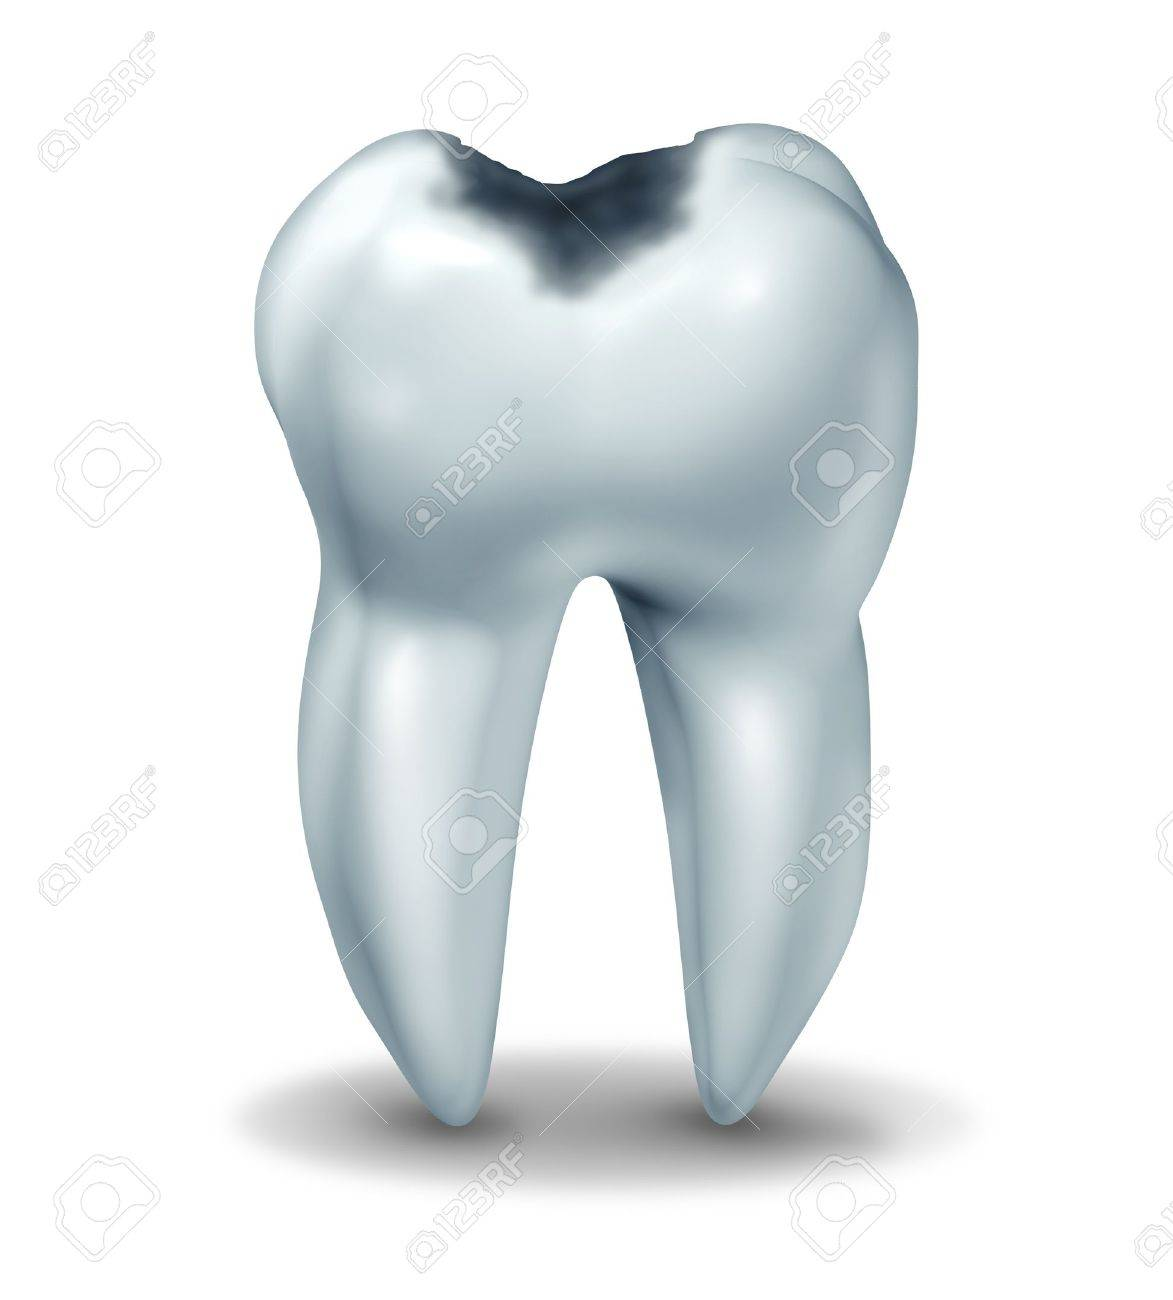 Tooth Cavity Symbol Showing The Medical Anatomy Of Teeth With ...